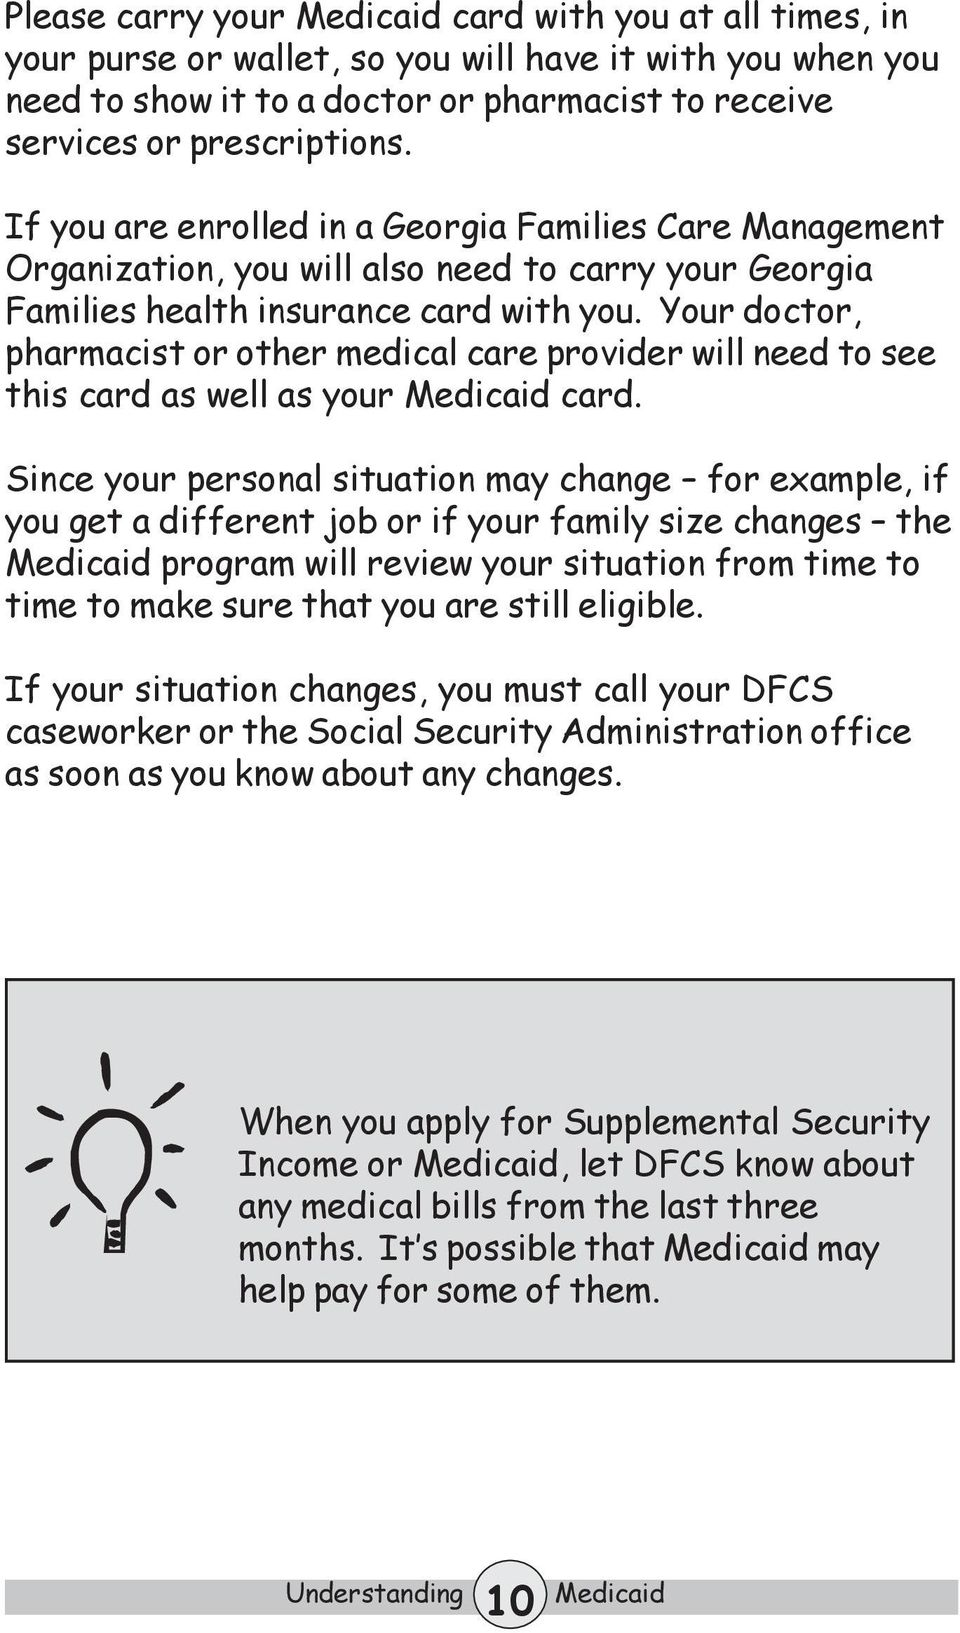 Your doctor, pharmacist or other medical care provider will need to see this card as well as your card.